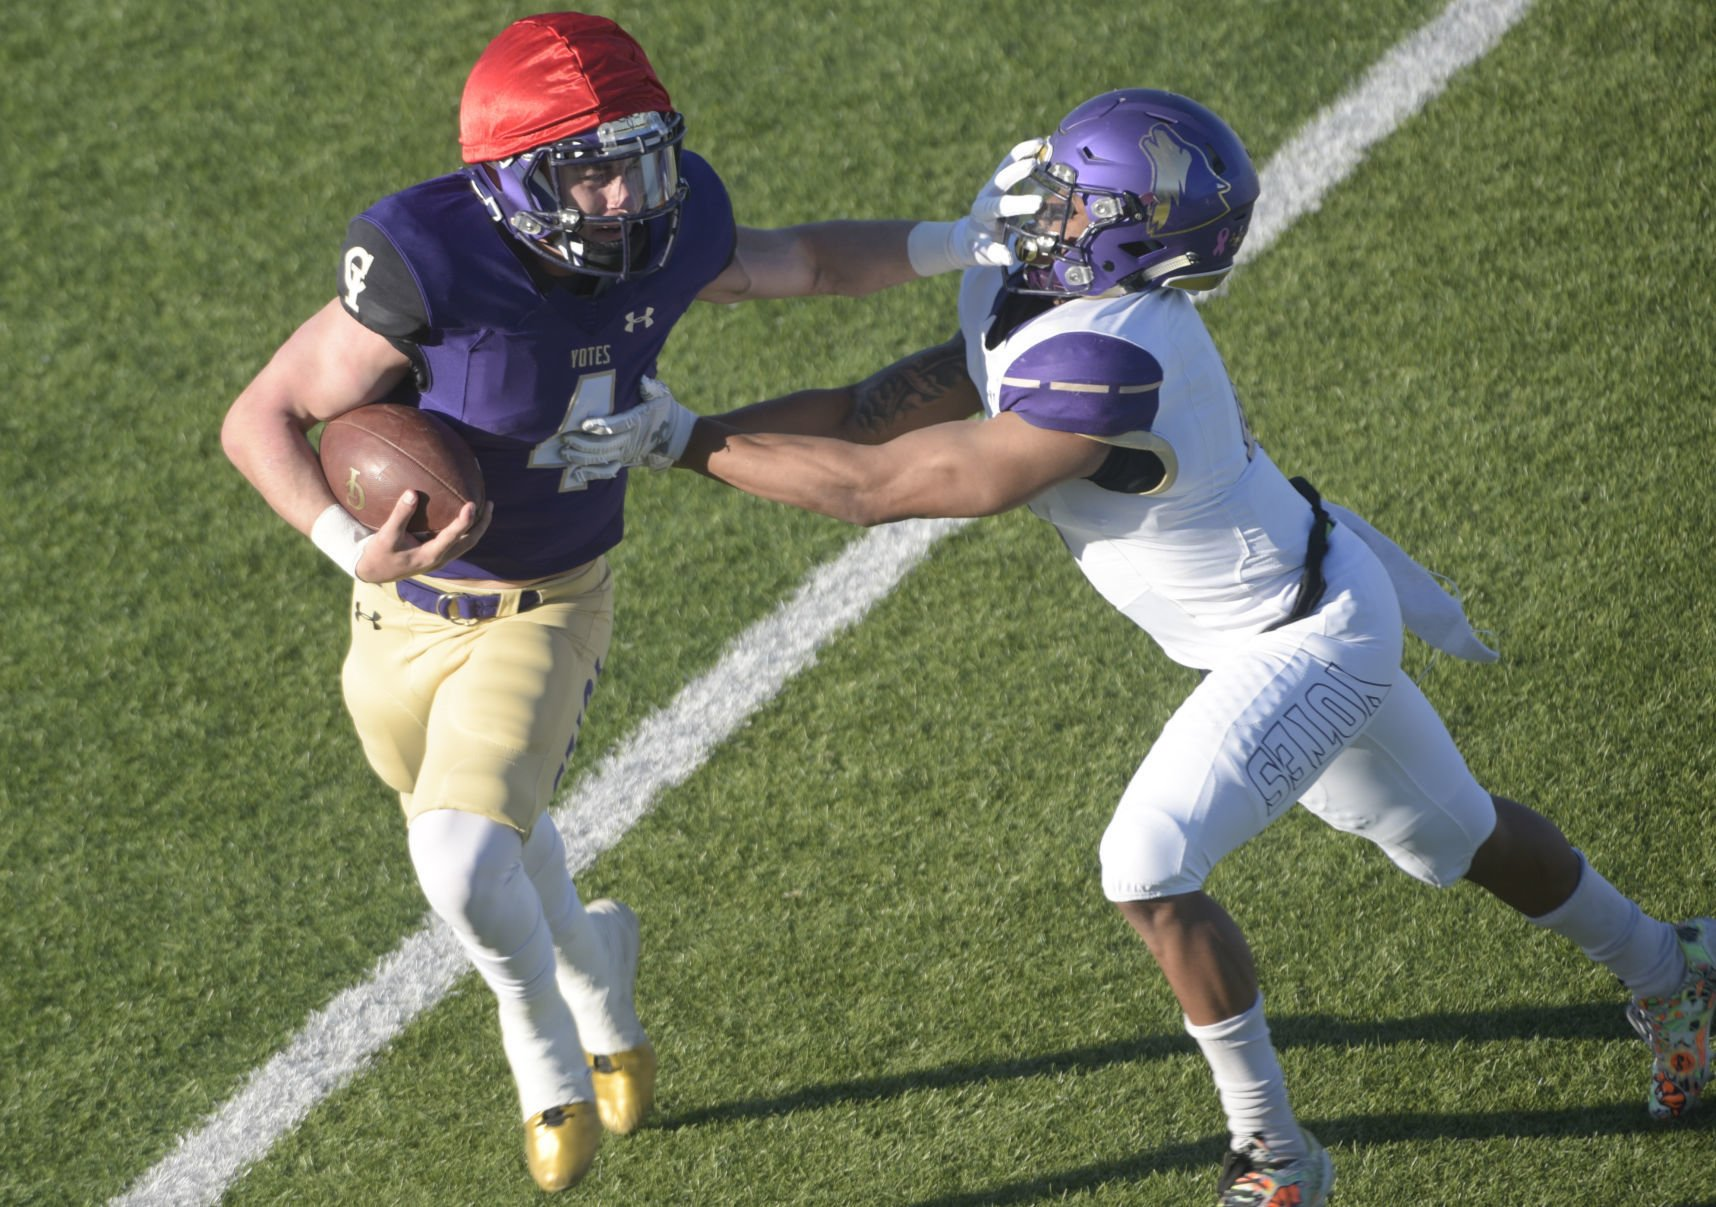 College of Idaho flashes strong recruiting hold